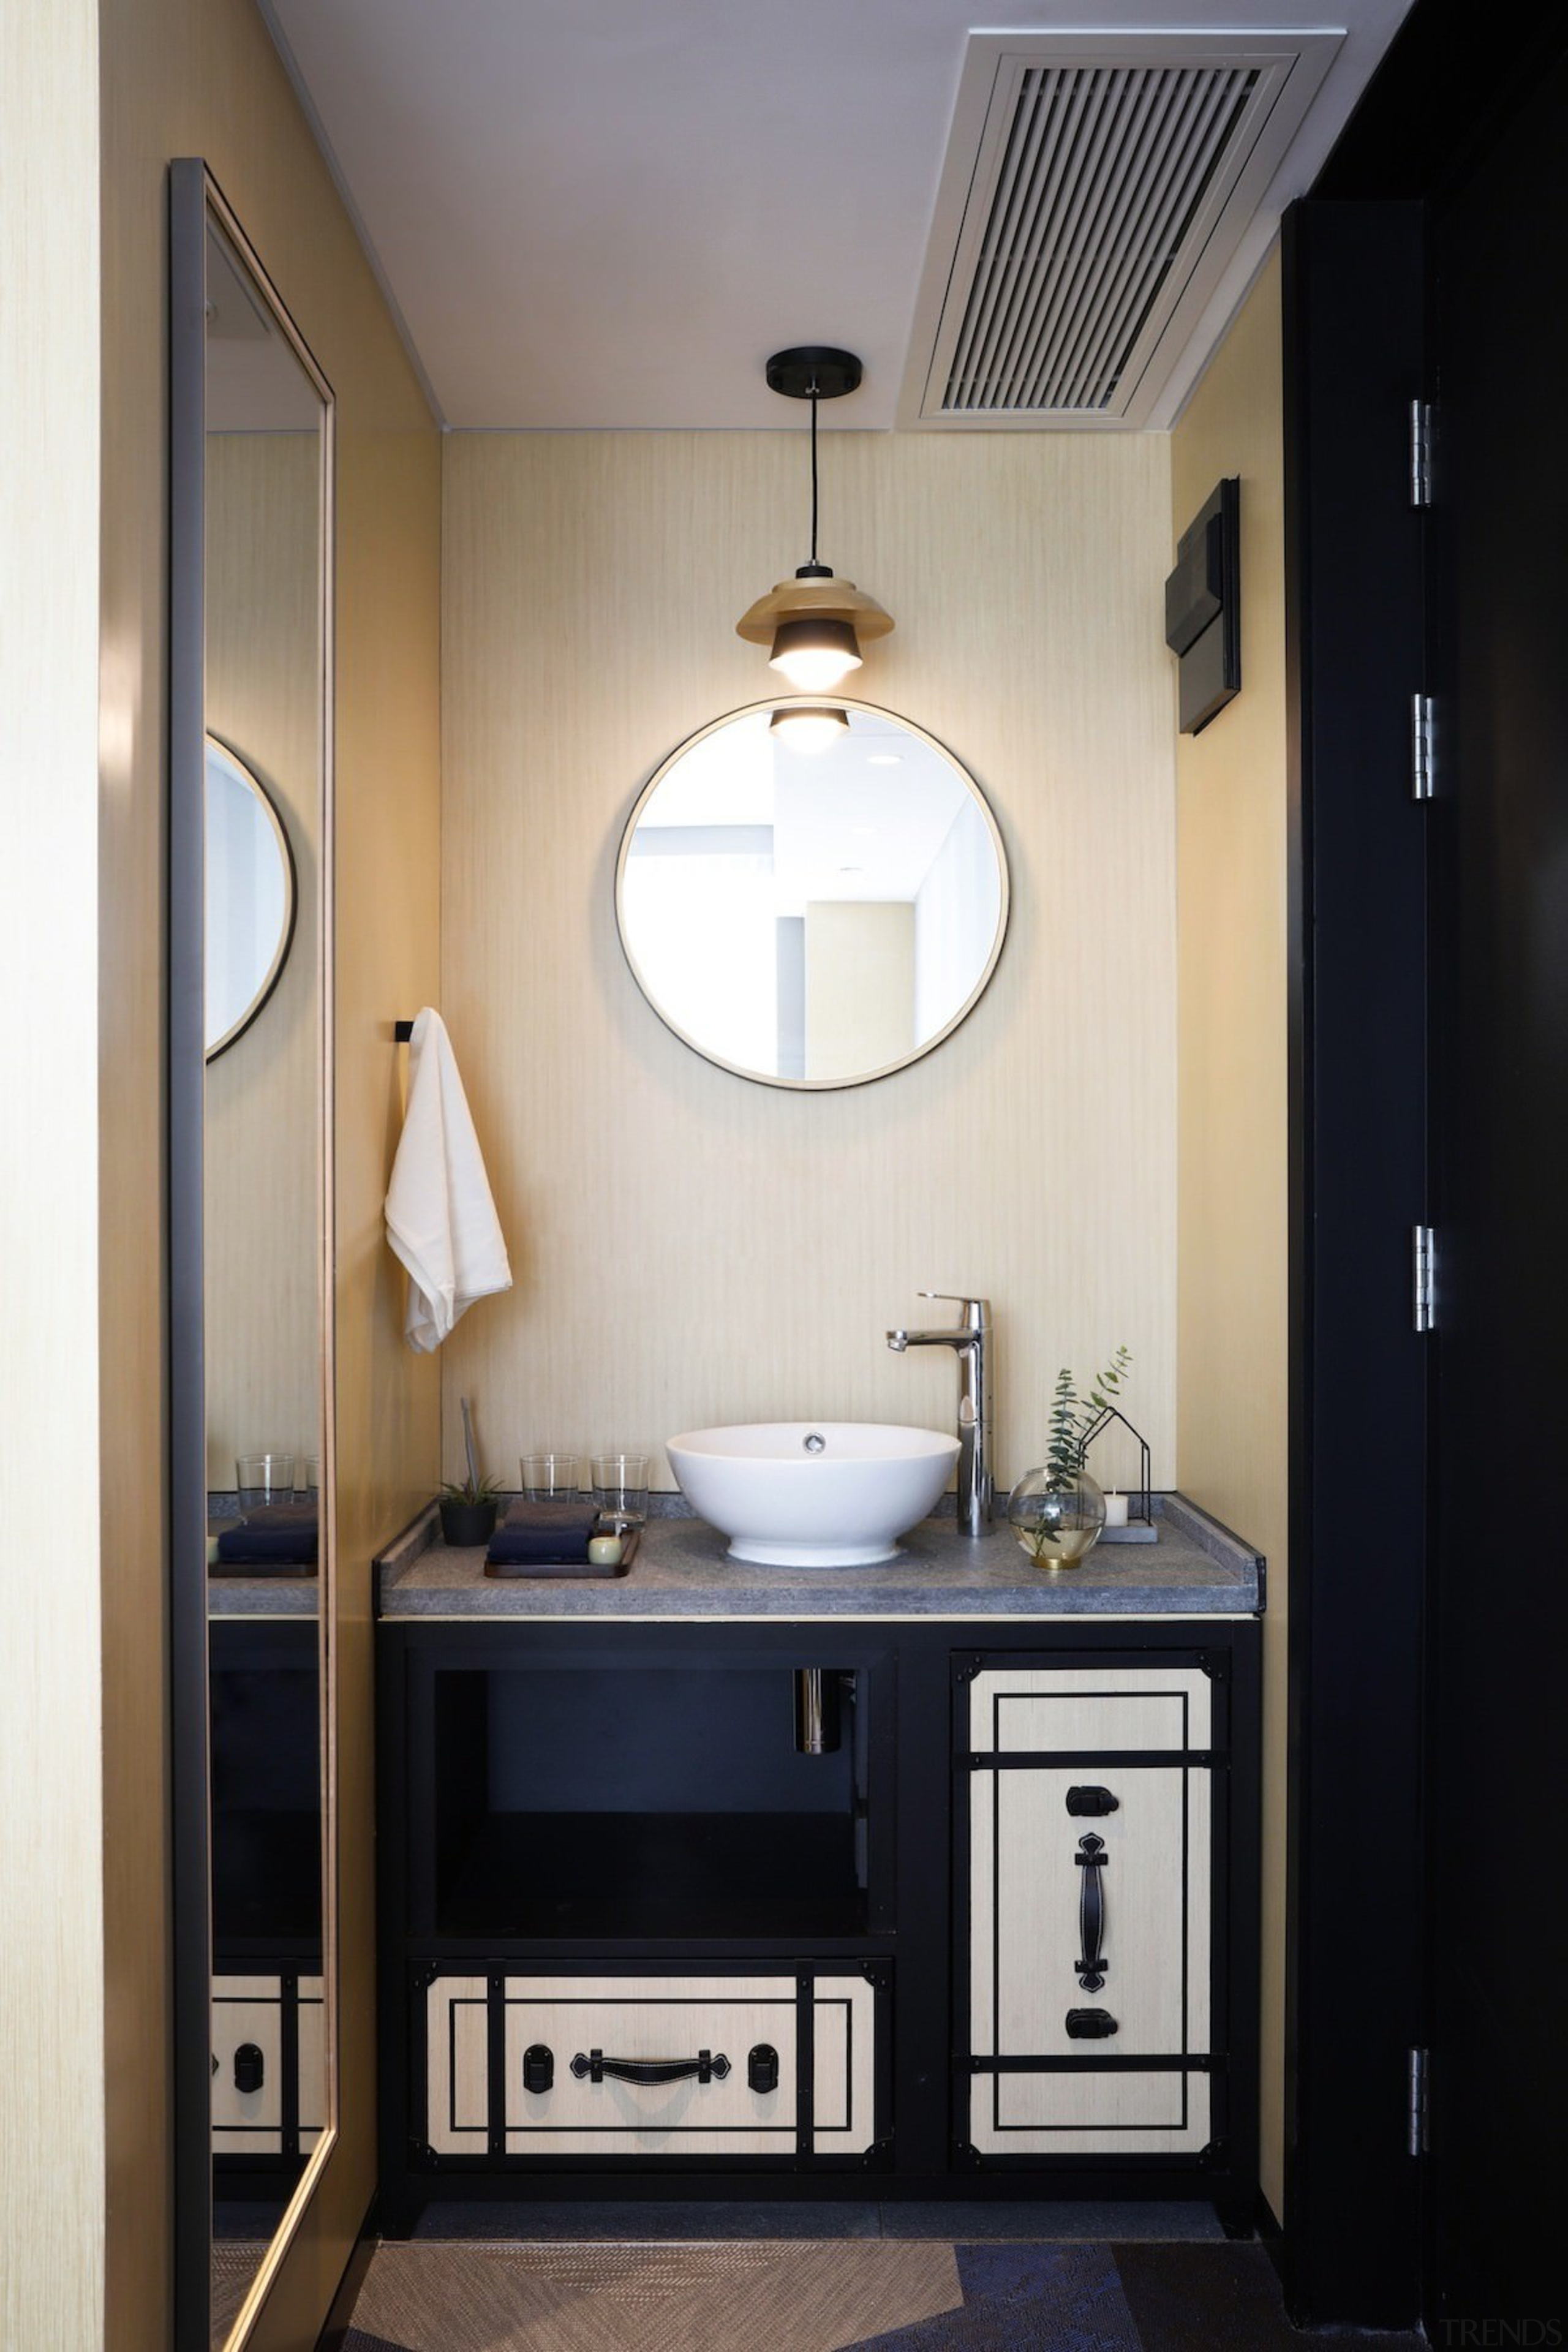 Hotel Ease Access - Hotel Ease Access - bathroom, ceiling, home, interior design, room, sink, gray, black